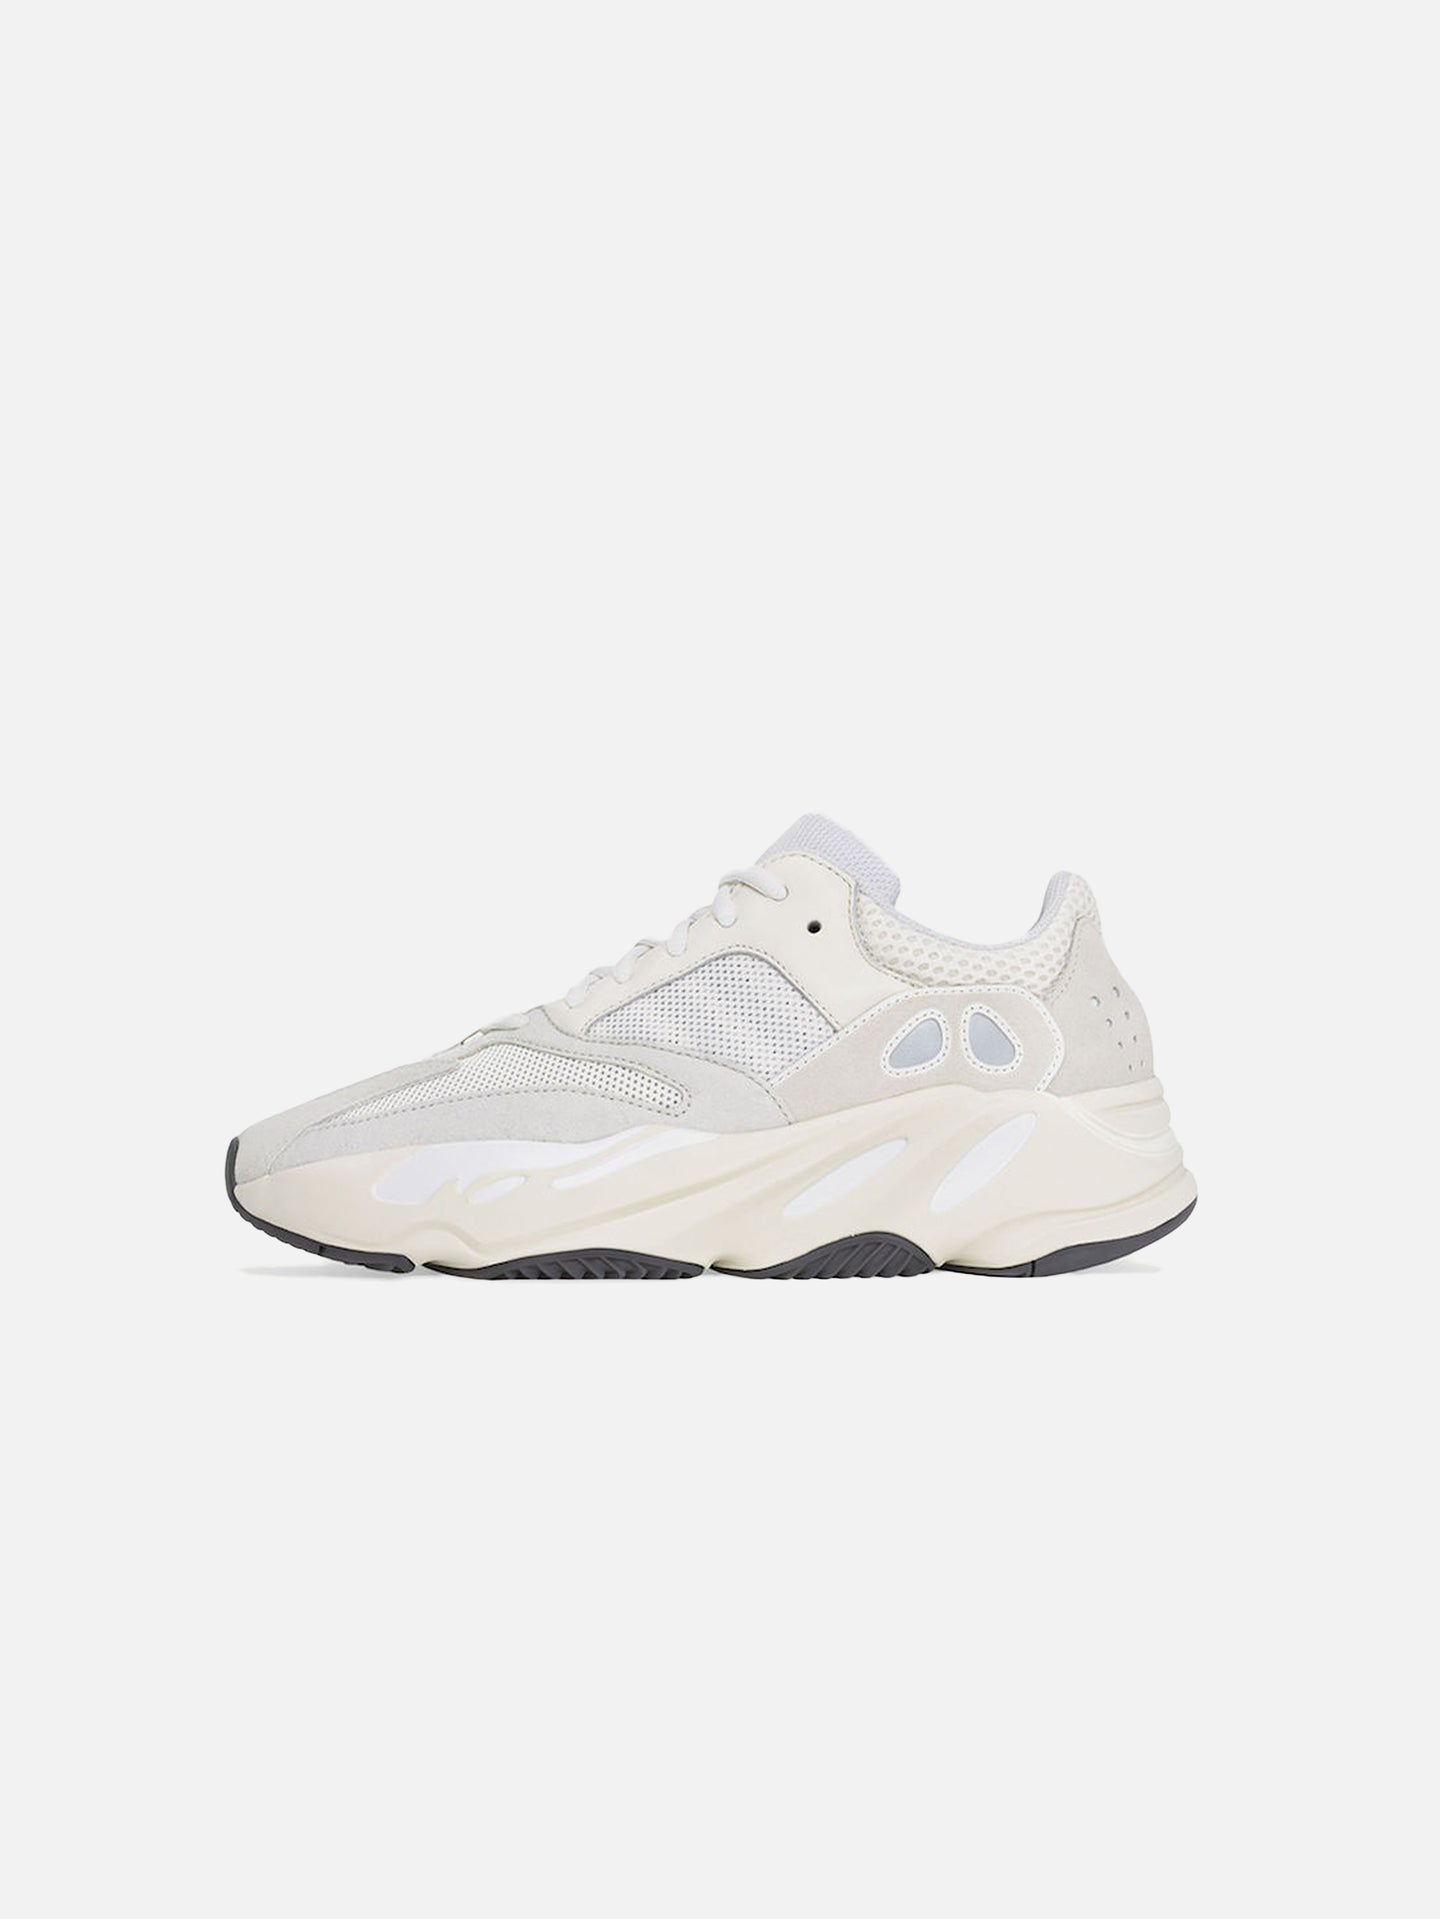 YEEZY BOOST 700: ANALOG